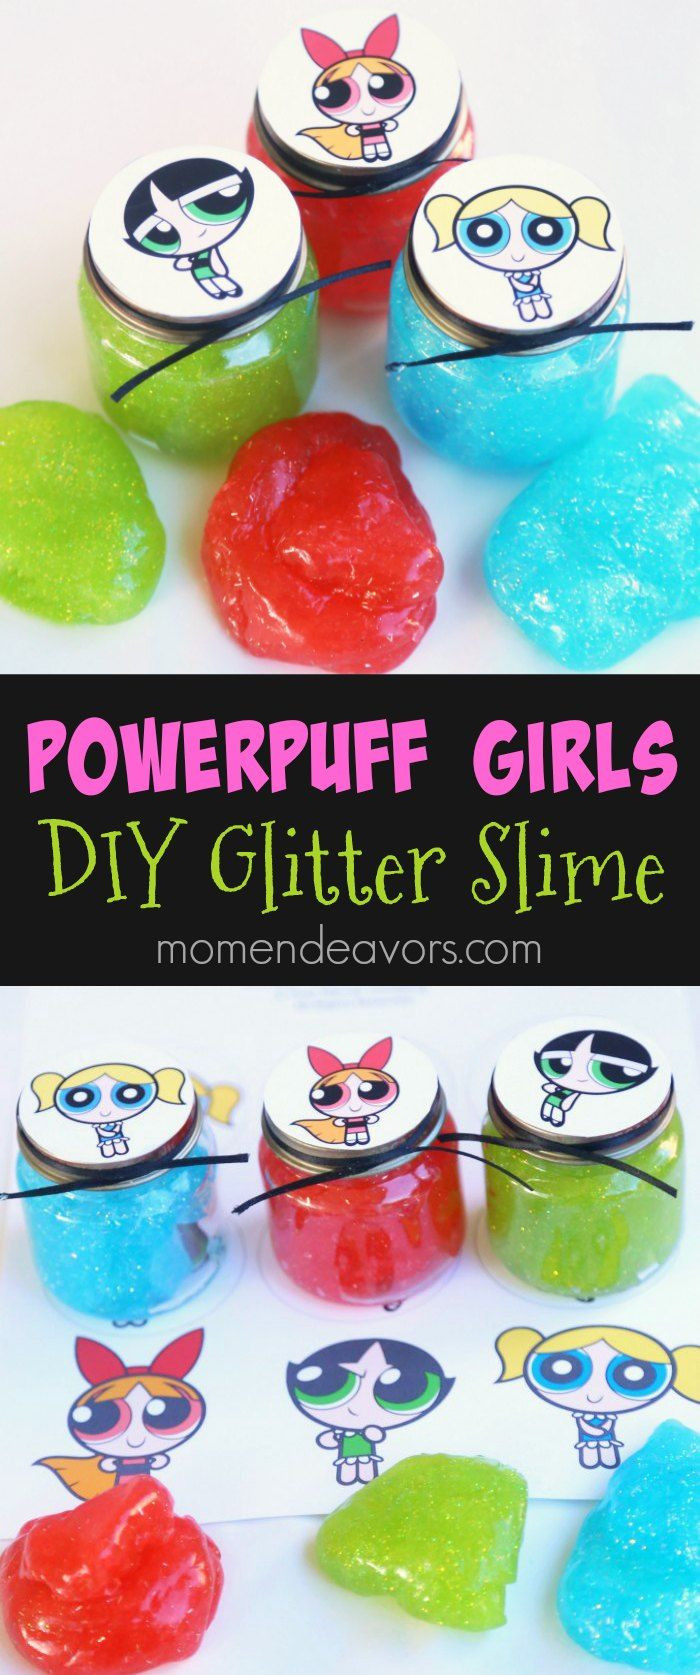 Best ideas about DIY Glitter Slime . Save or Pin Powerpuff Girls Party Favor DIY Glitter Slime Make some Now.